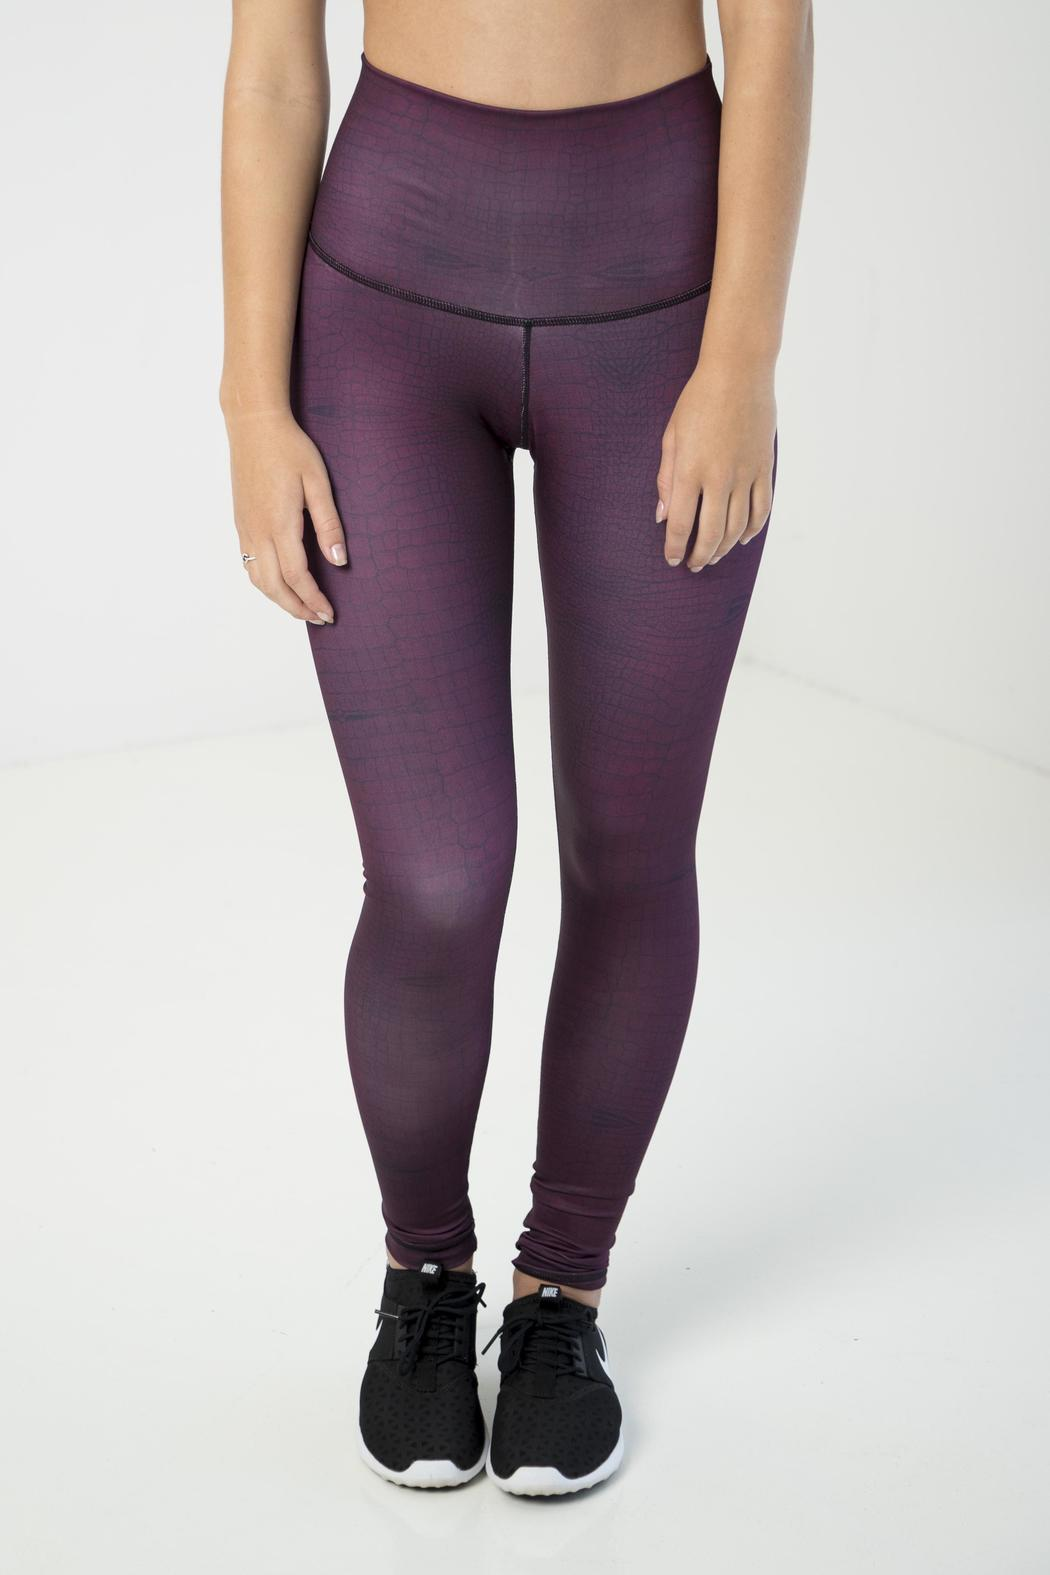 074ef871e477f2 DYI Signature Crocodile Tight from Kansas by FitWear Boutique ...